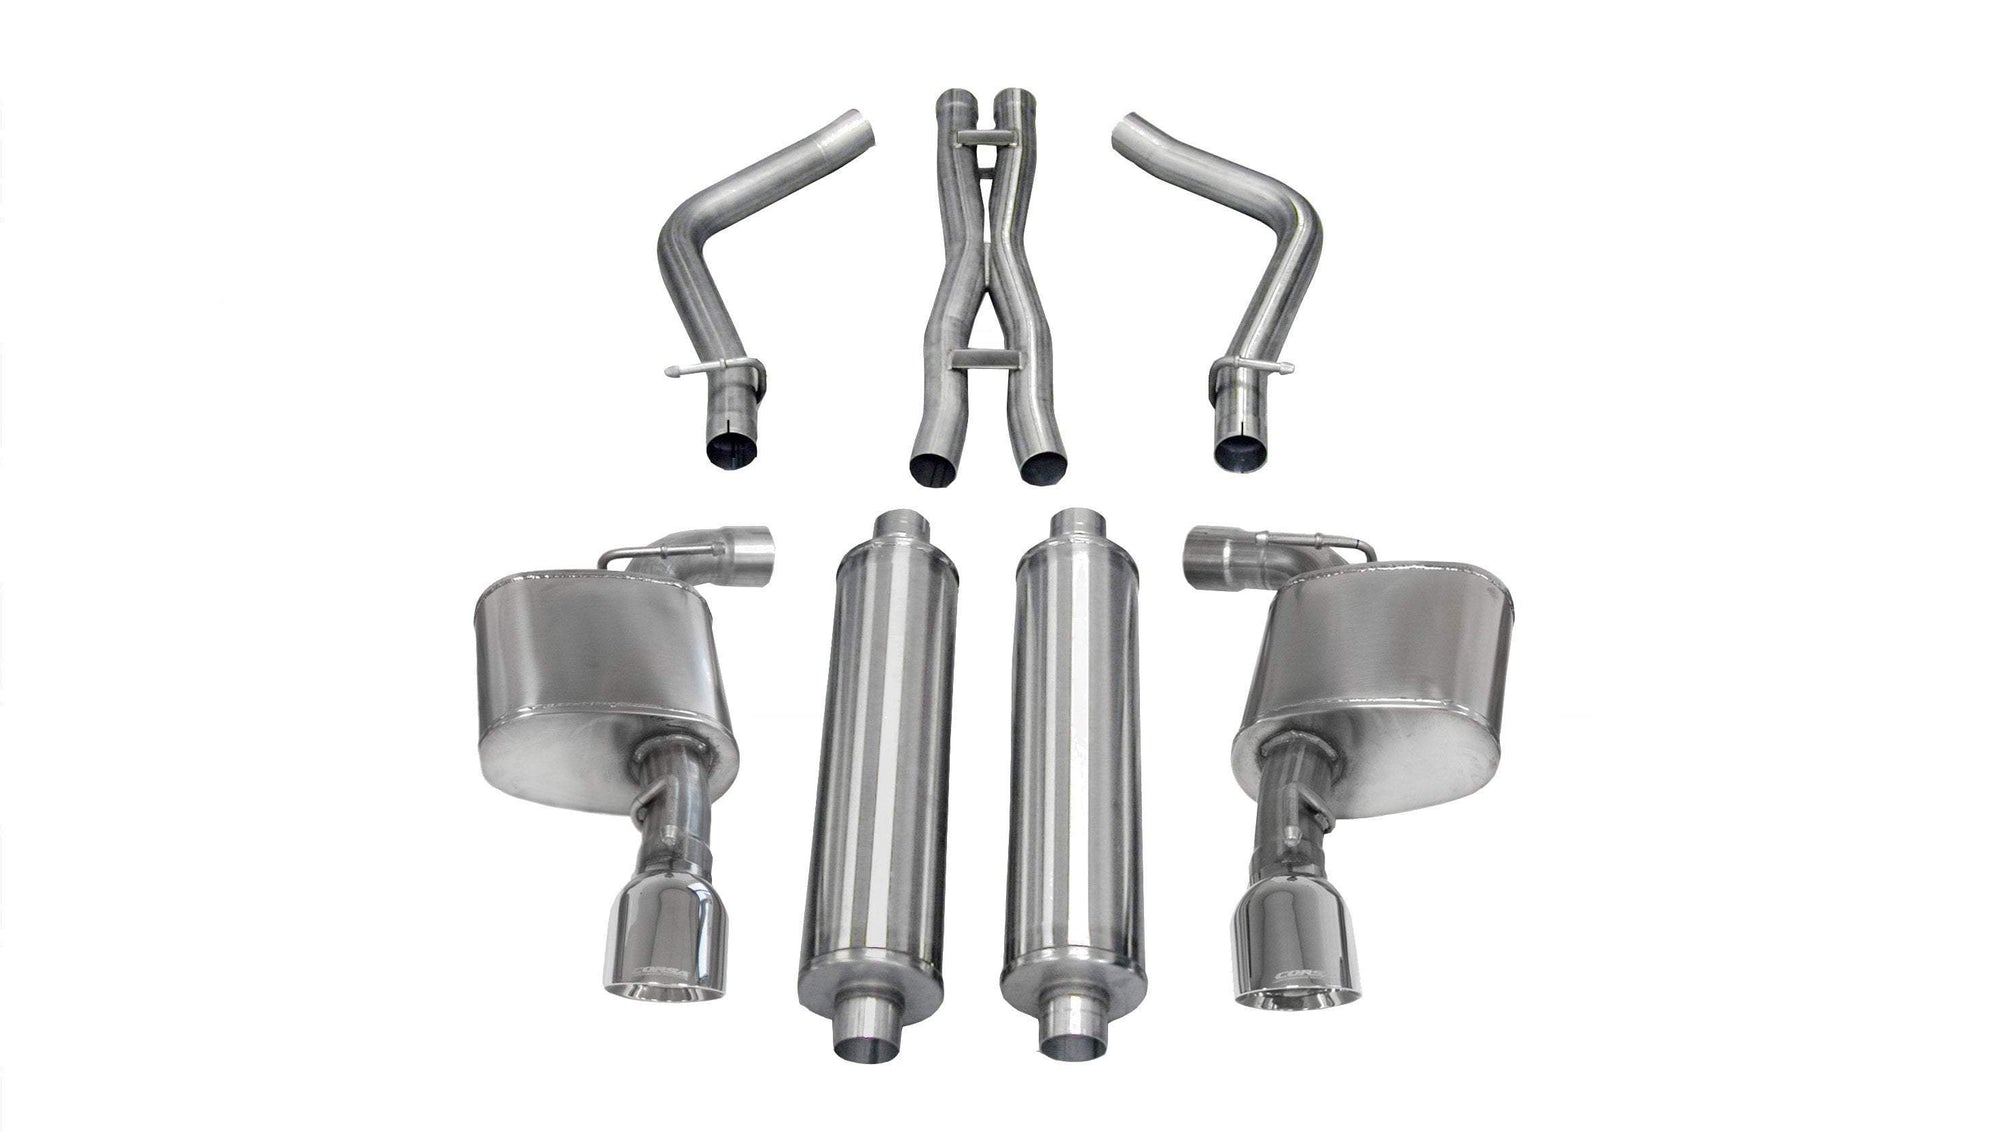 "CORSA PERFORMANCE Cat-Back Exhaust Polished / Xtreme / Dual Rear - Single 4.5in 2012-2014 Dodge Charger, Chyrsler 300 2.75"" Dual Rear Exit Catback Exhaust System with 4.5"" Tips (14464) Xtreme Sound Level"